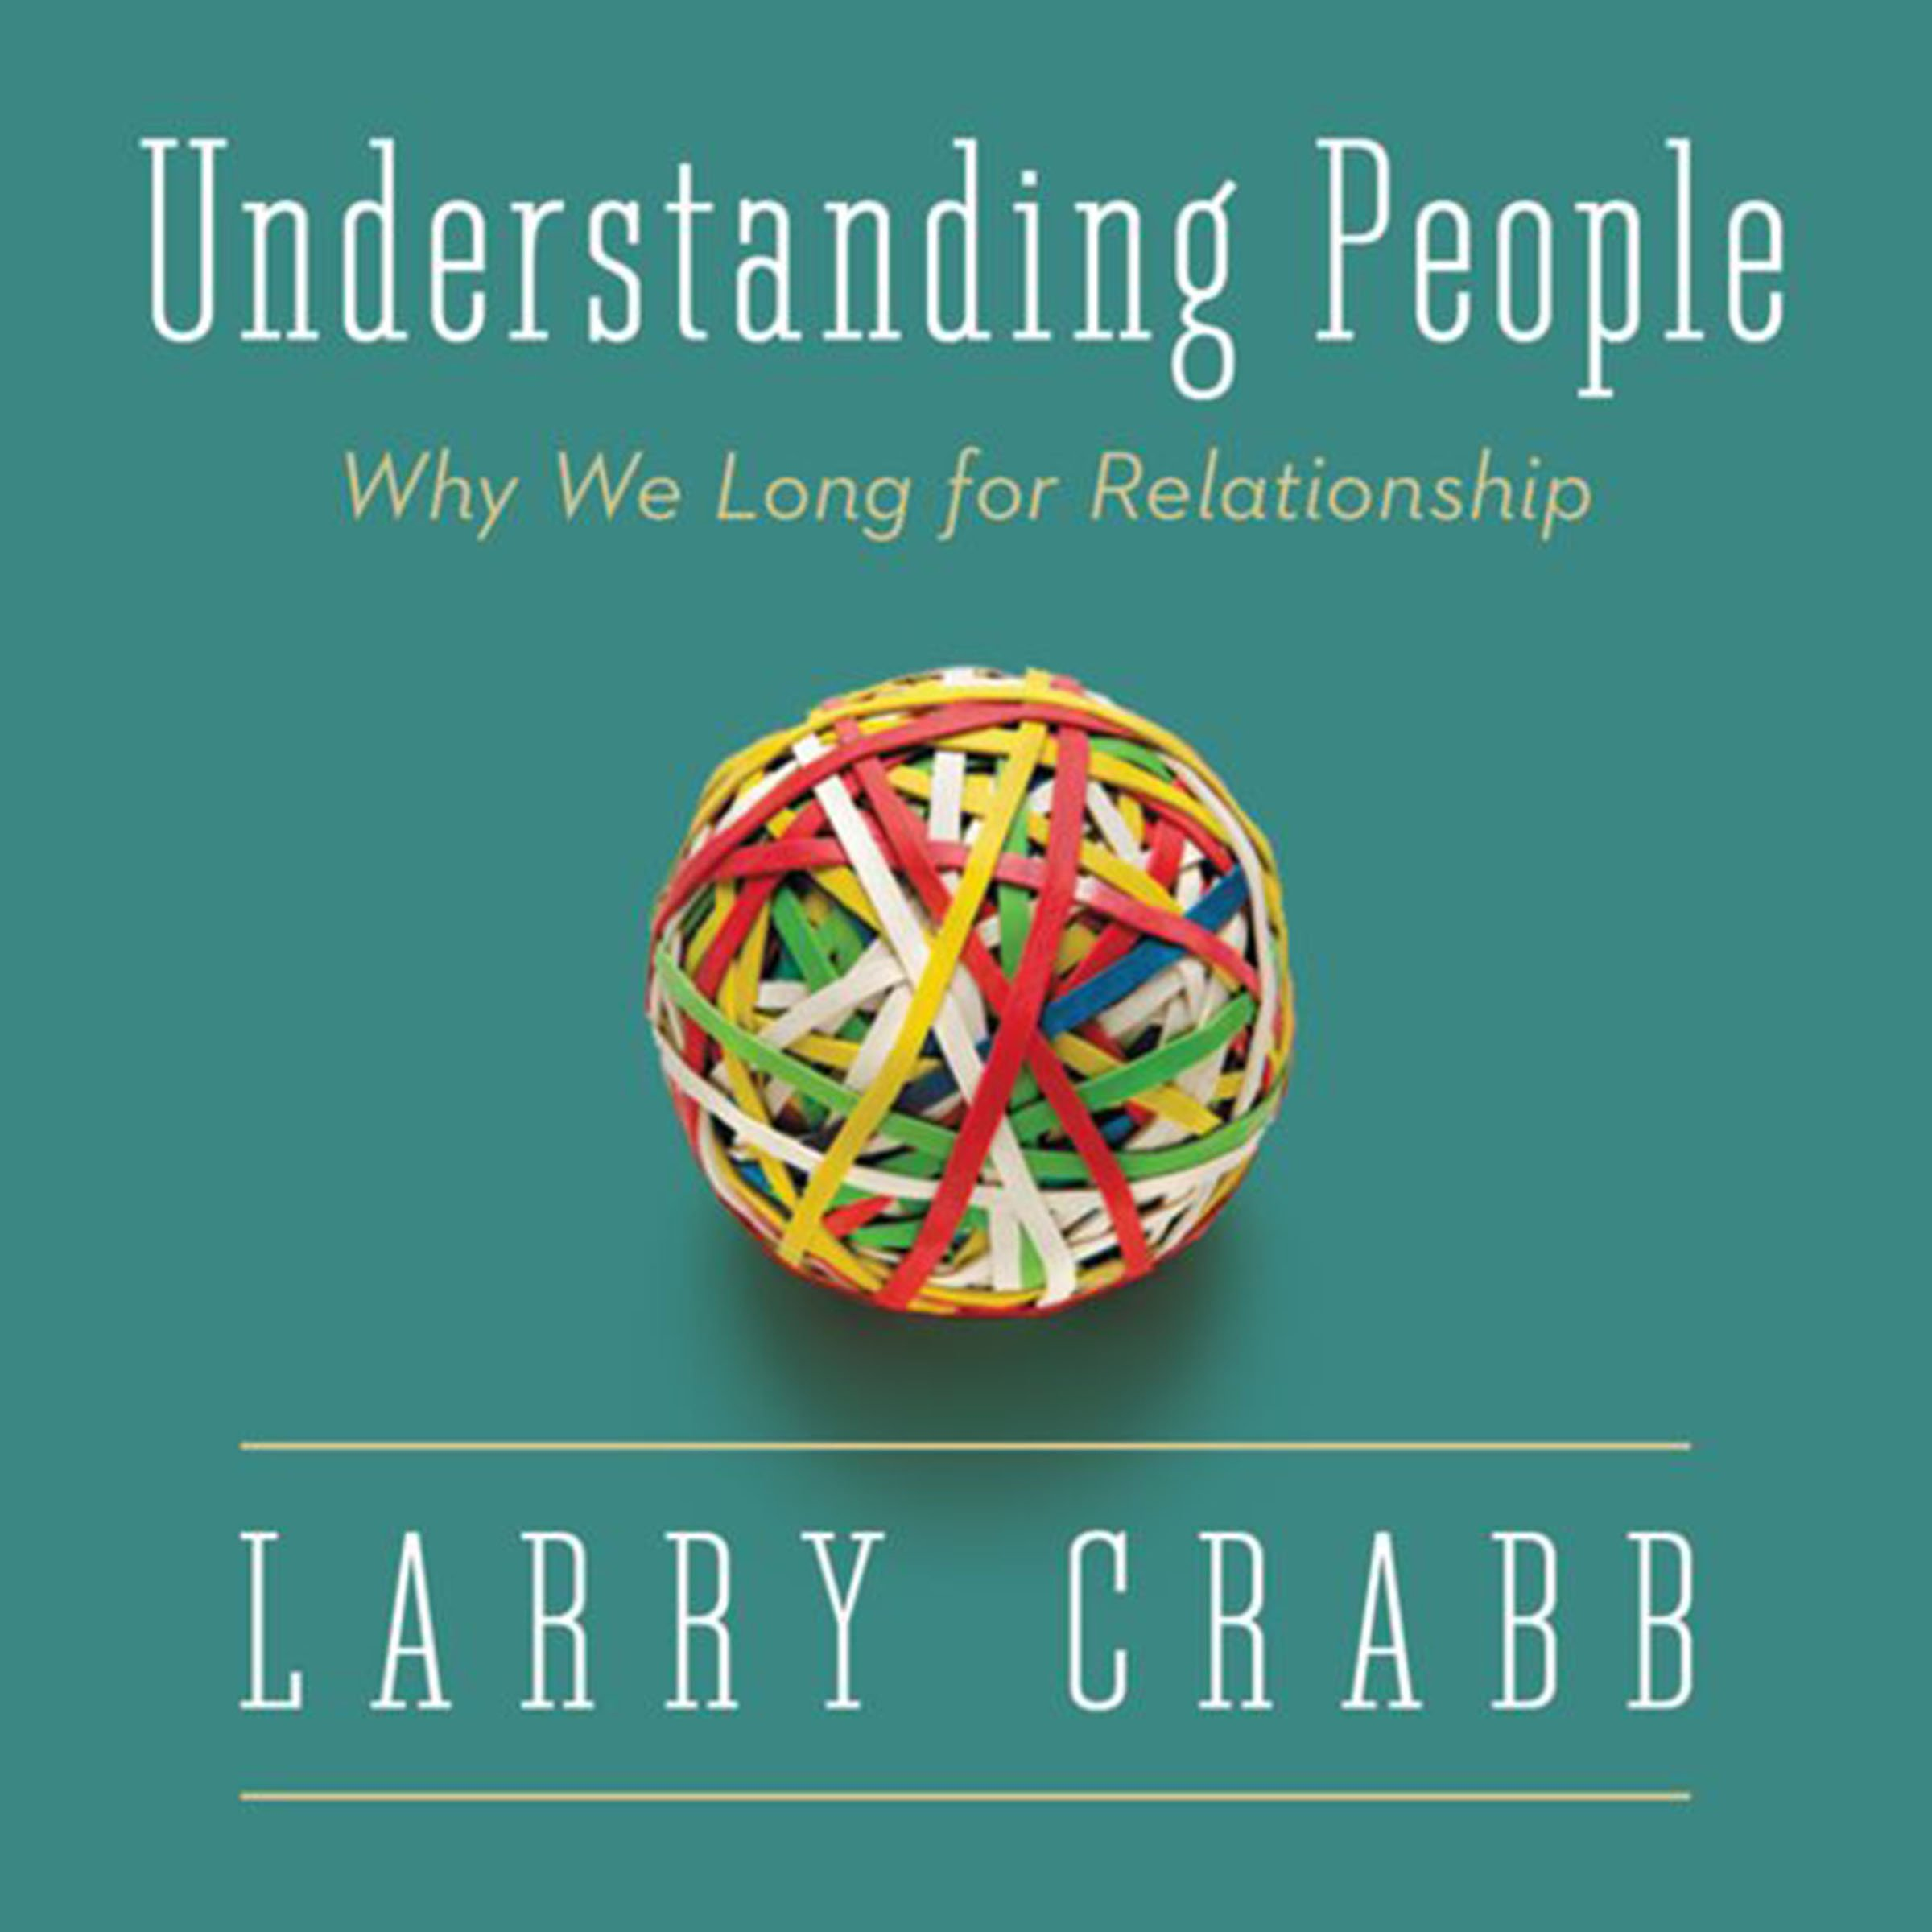 Pdf Telecharger Understanding People Why We Long For Relationship By Dr Larry Crabb Epub Ebook Calibre73 Semerpoursepanouir Fr